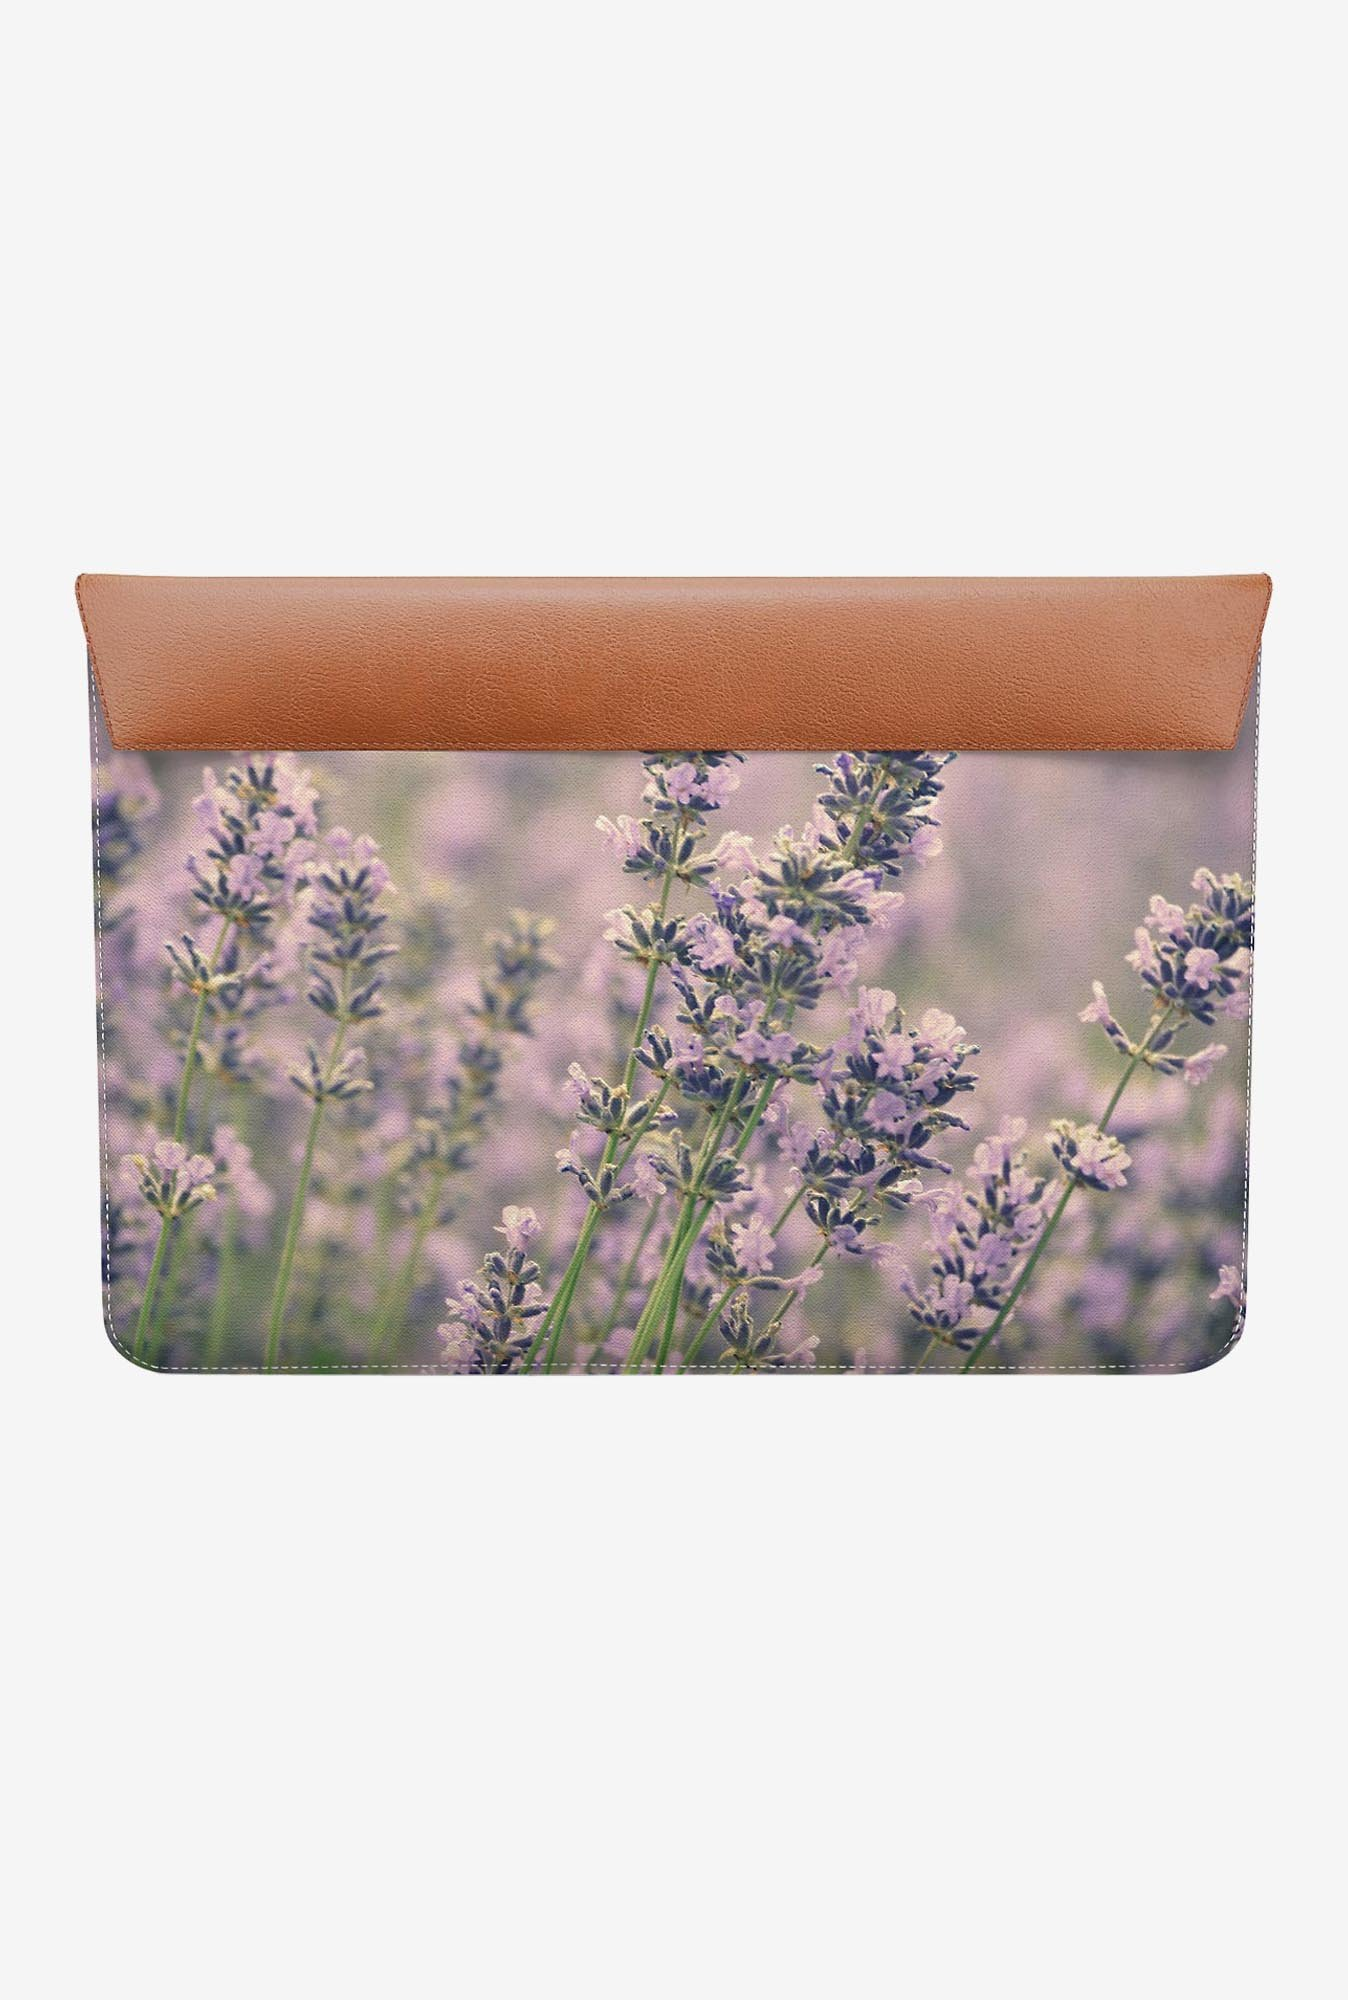 "DailyObjects Smell Blossoms MacBook Pro 15"" Envelope Sleeve"